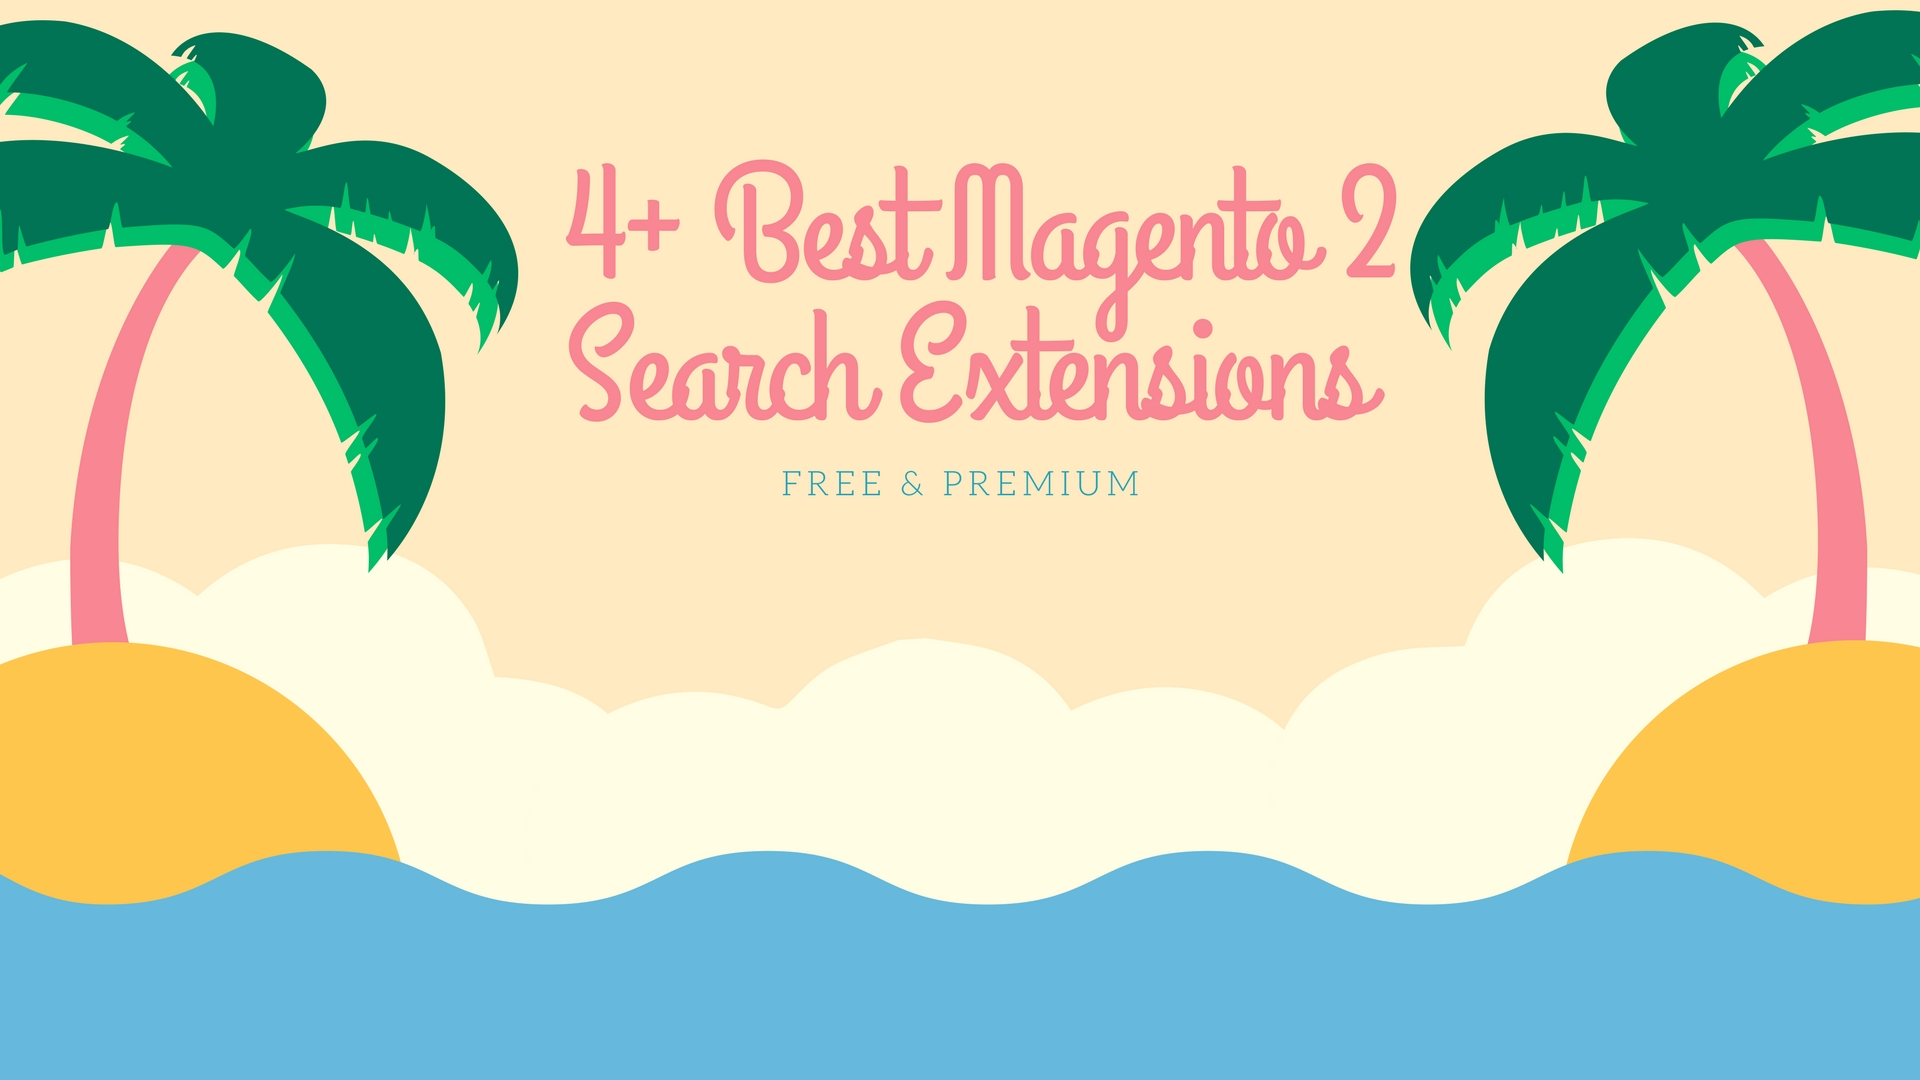 4+ Best Magento 2 Search Extensions